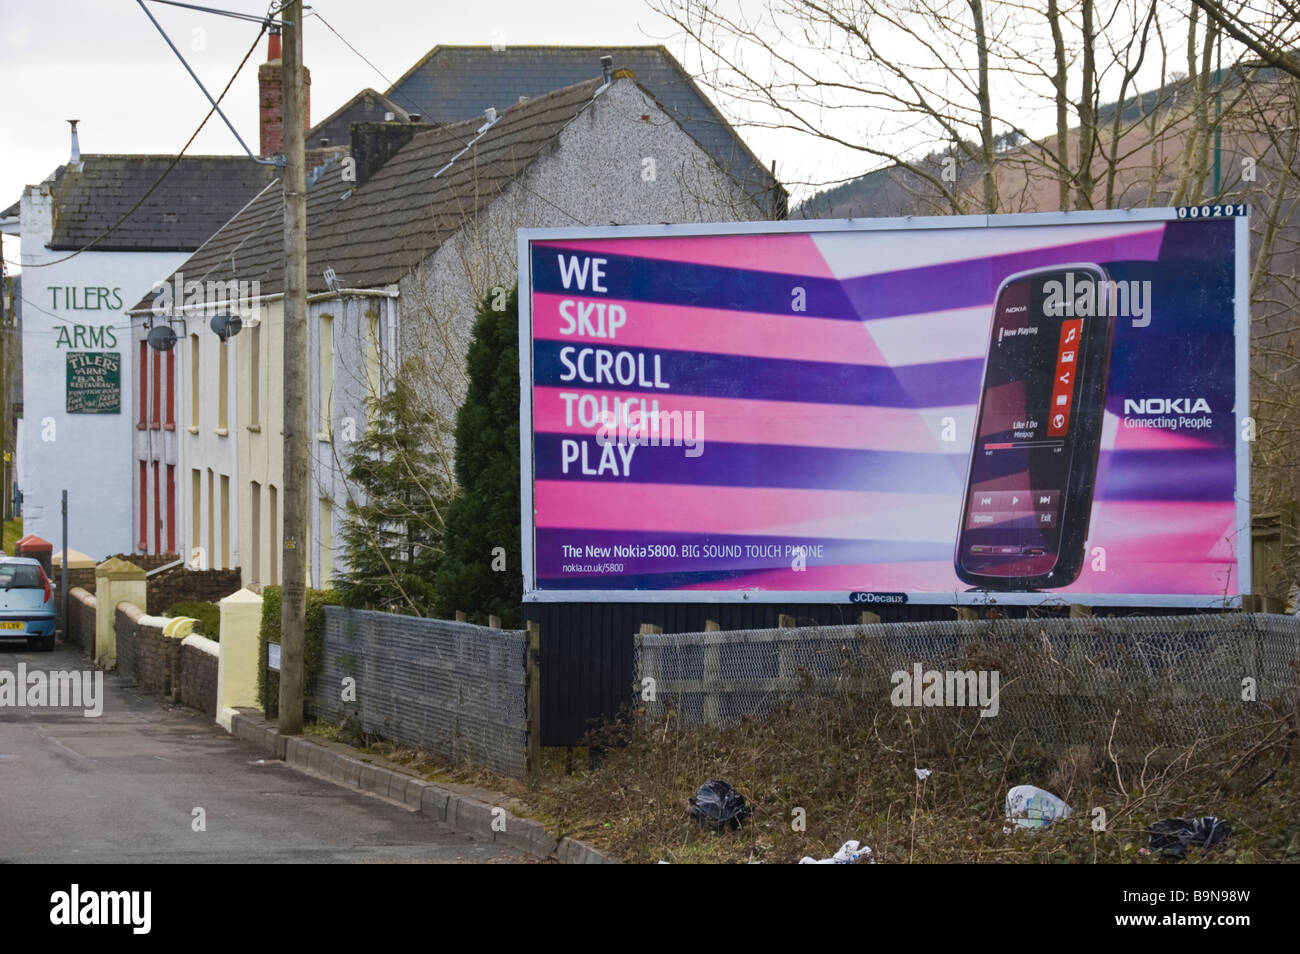 JCDecaux advertising billboard for Nokia mobile phone at end of terrace of houses Blaina in South Wales Valleys - Stock Image